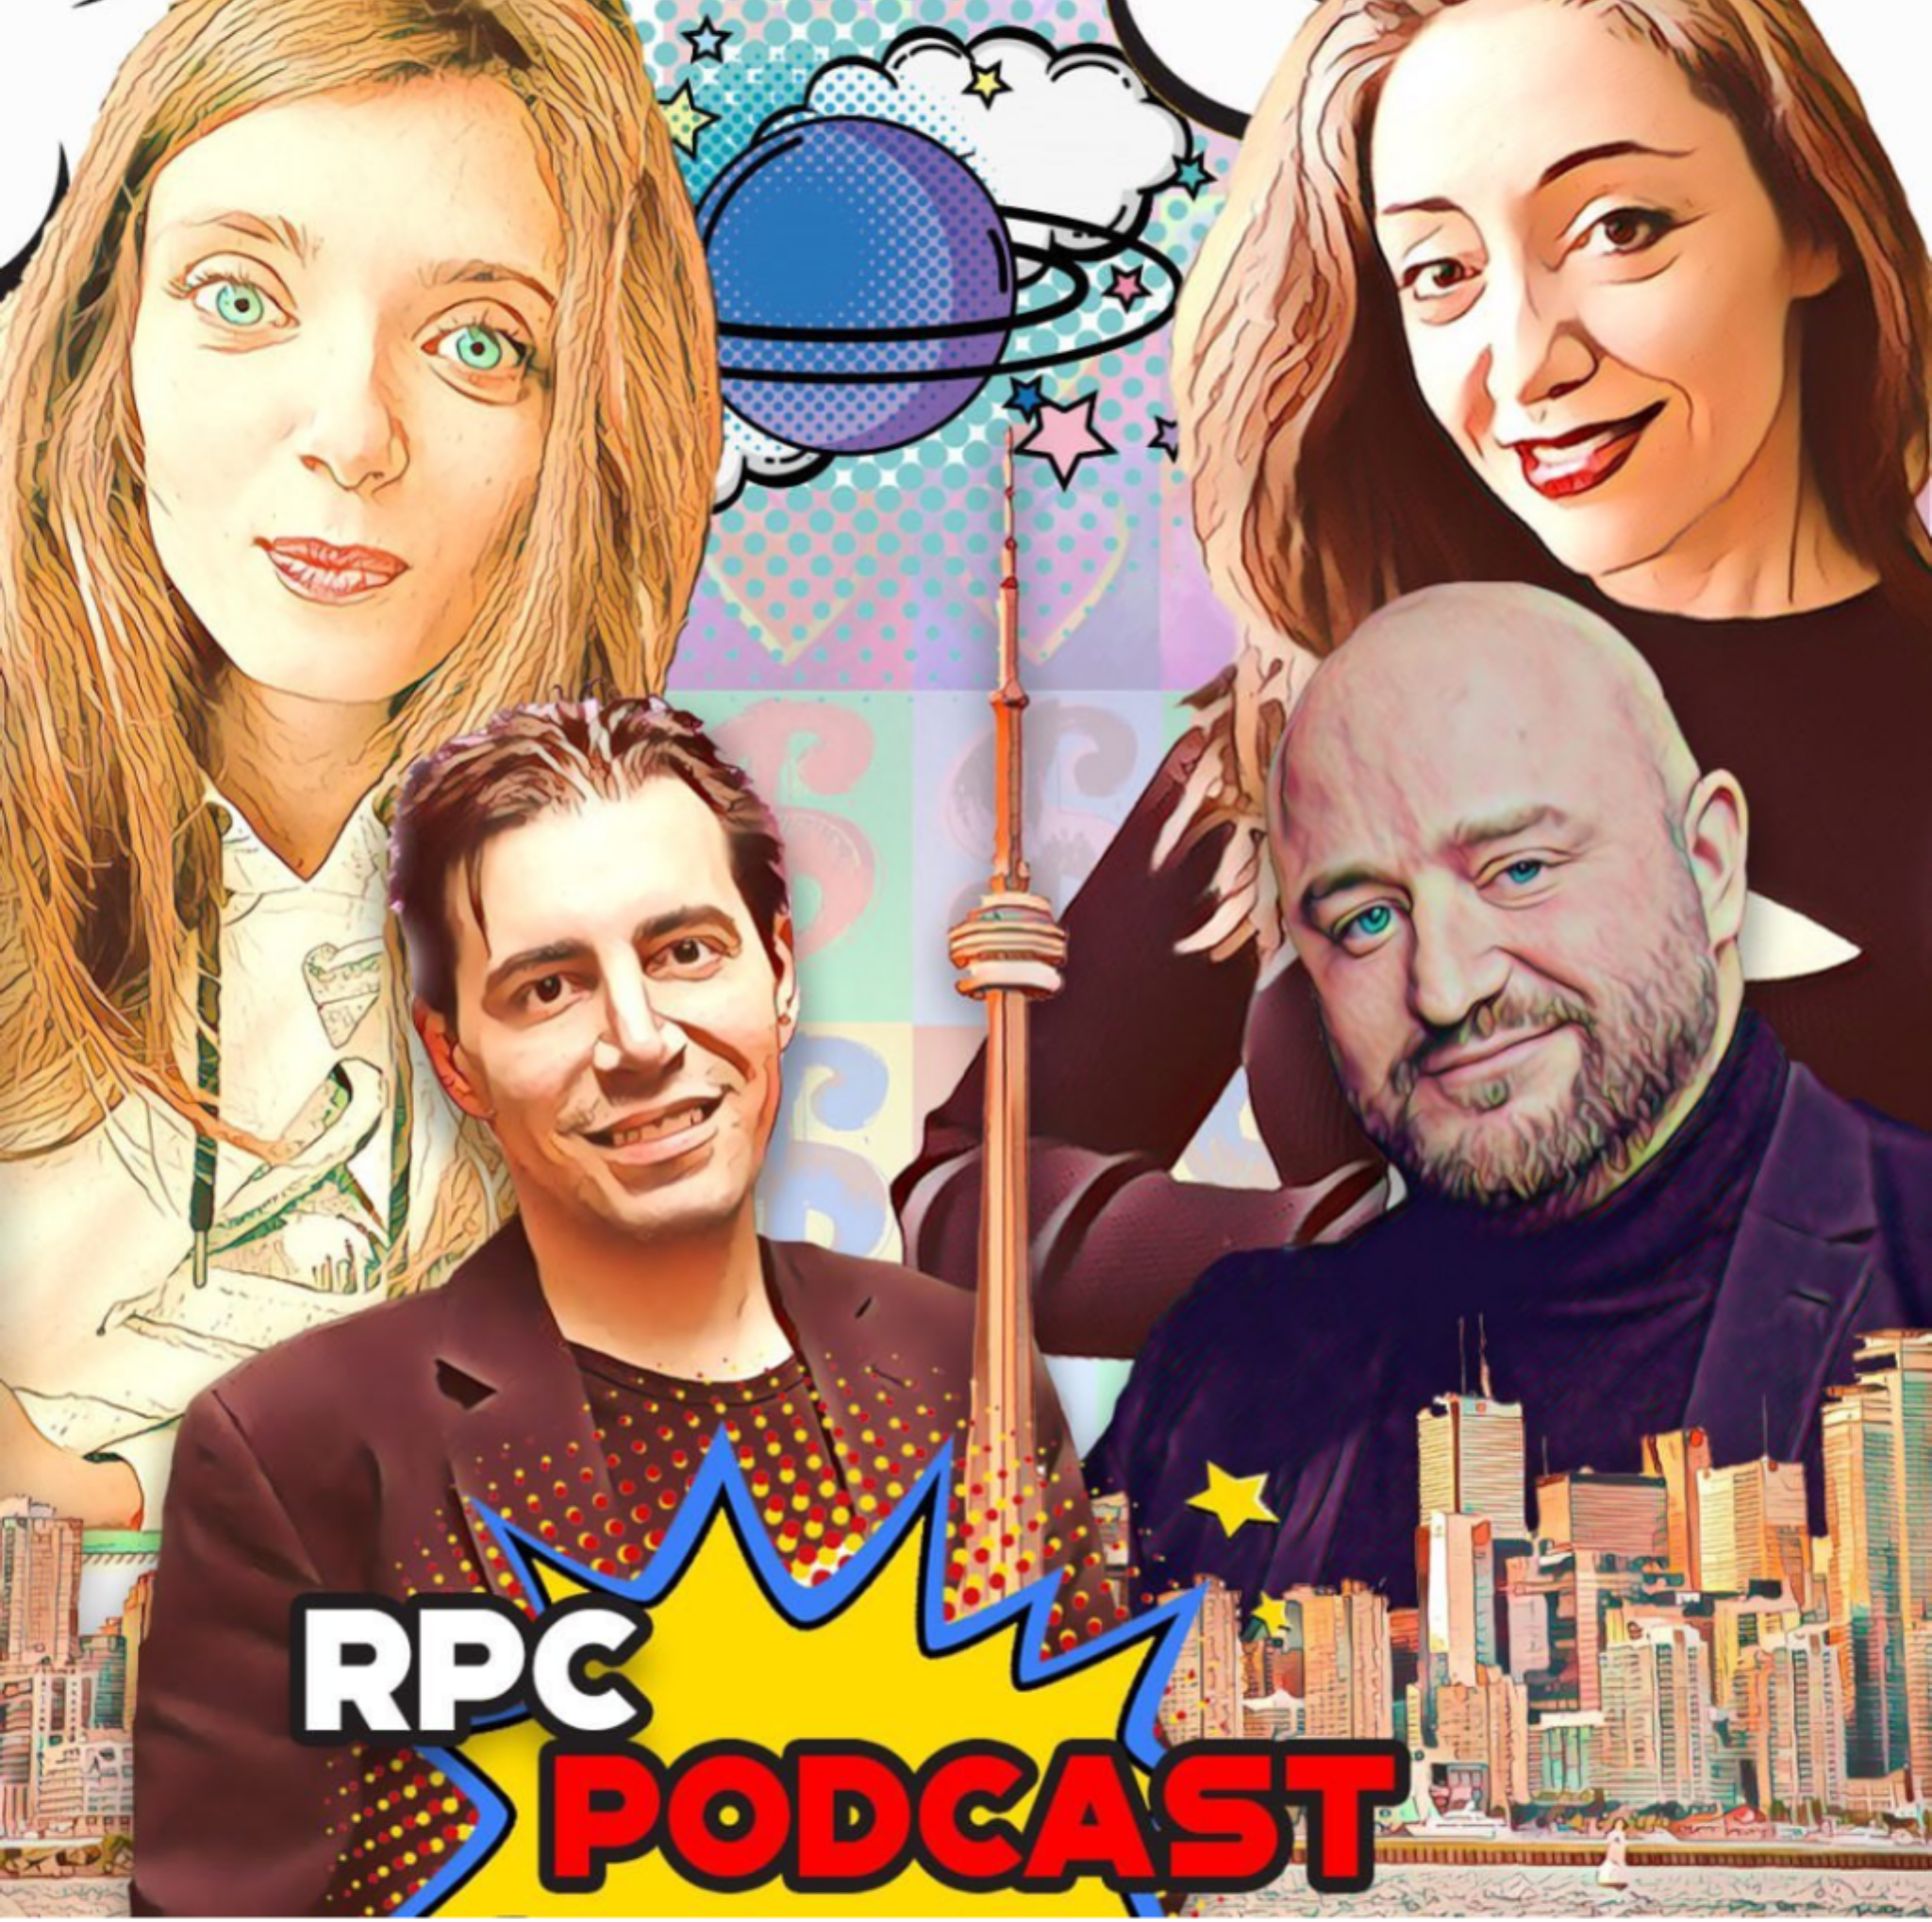 RPC Podcast interview